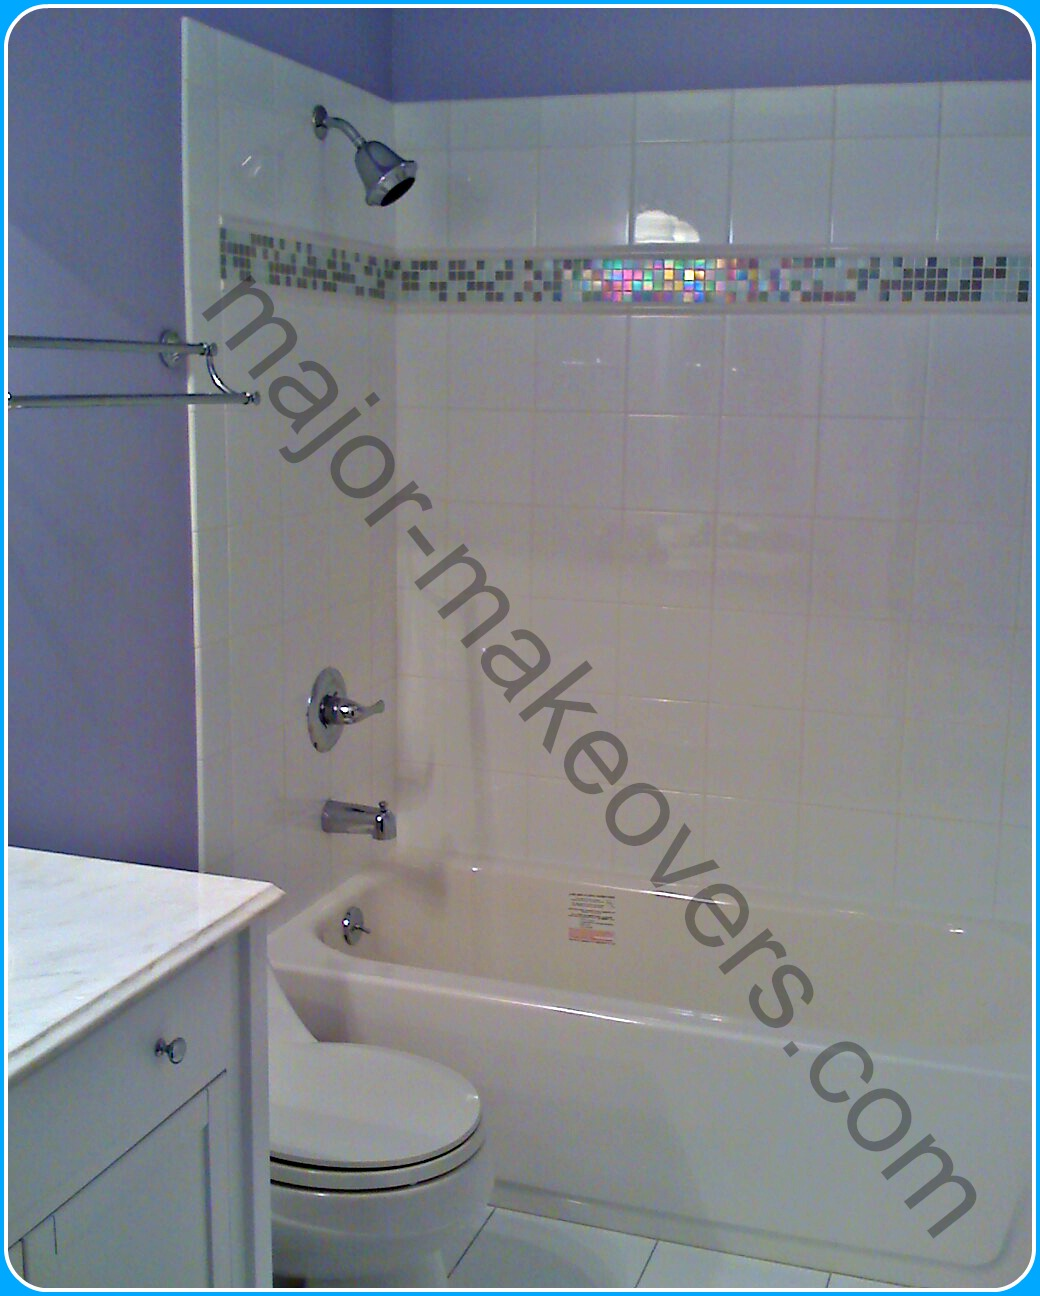 Oak Brook, IL 60523 - 6x6 white ceramic tile installed on tub surround walls with matching length bullnose to finish edges. Decorative strips of 2 tone mosaic at eye-level with white pencil tile.